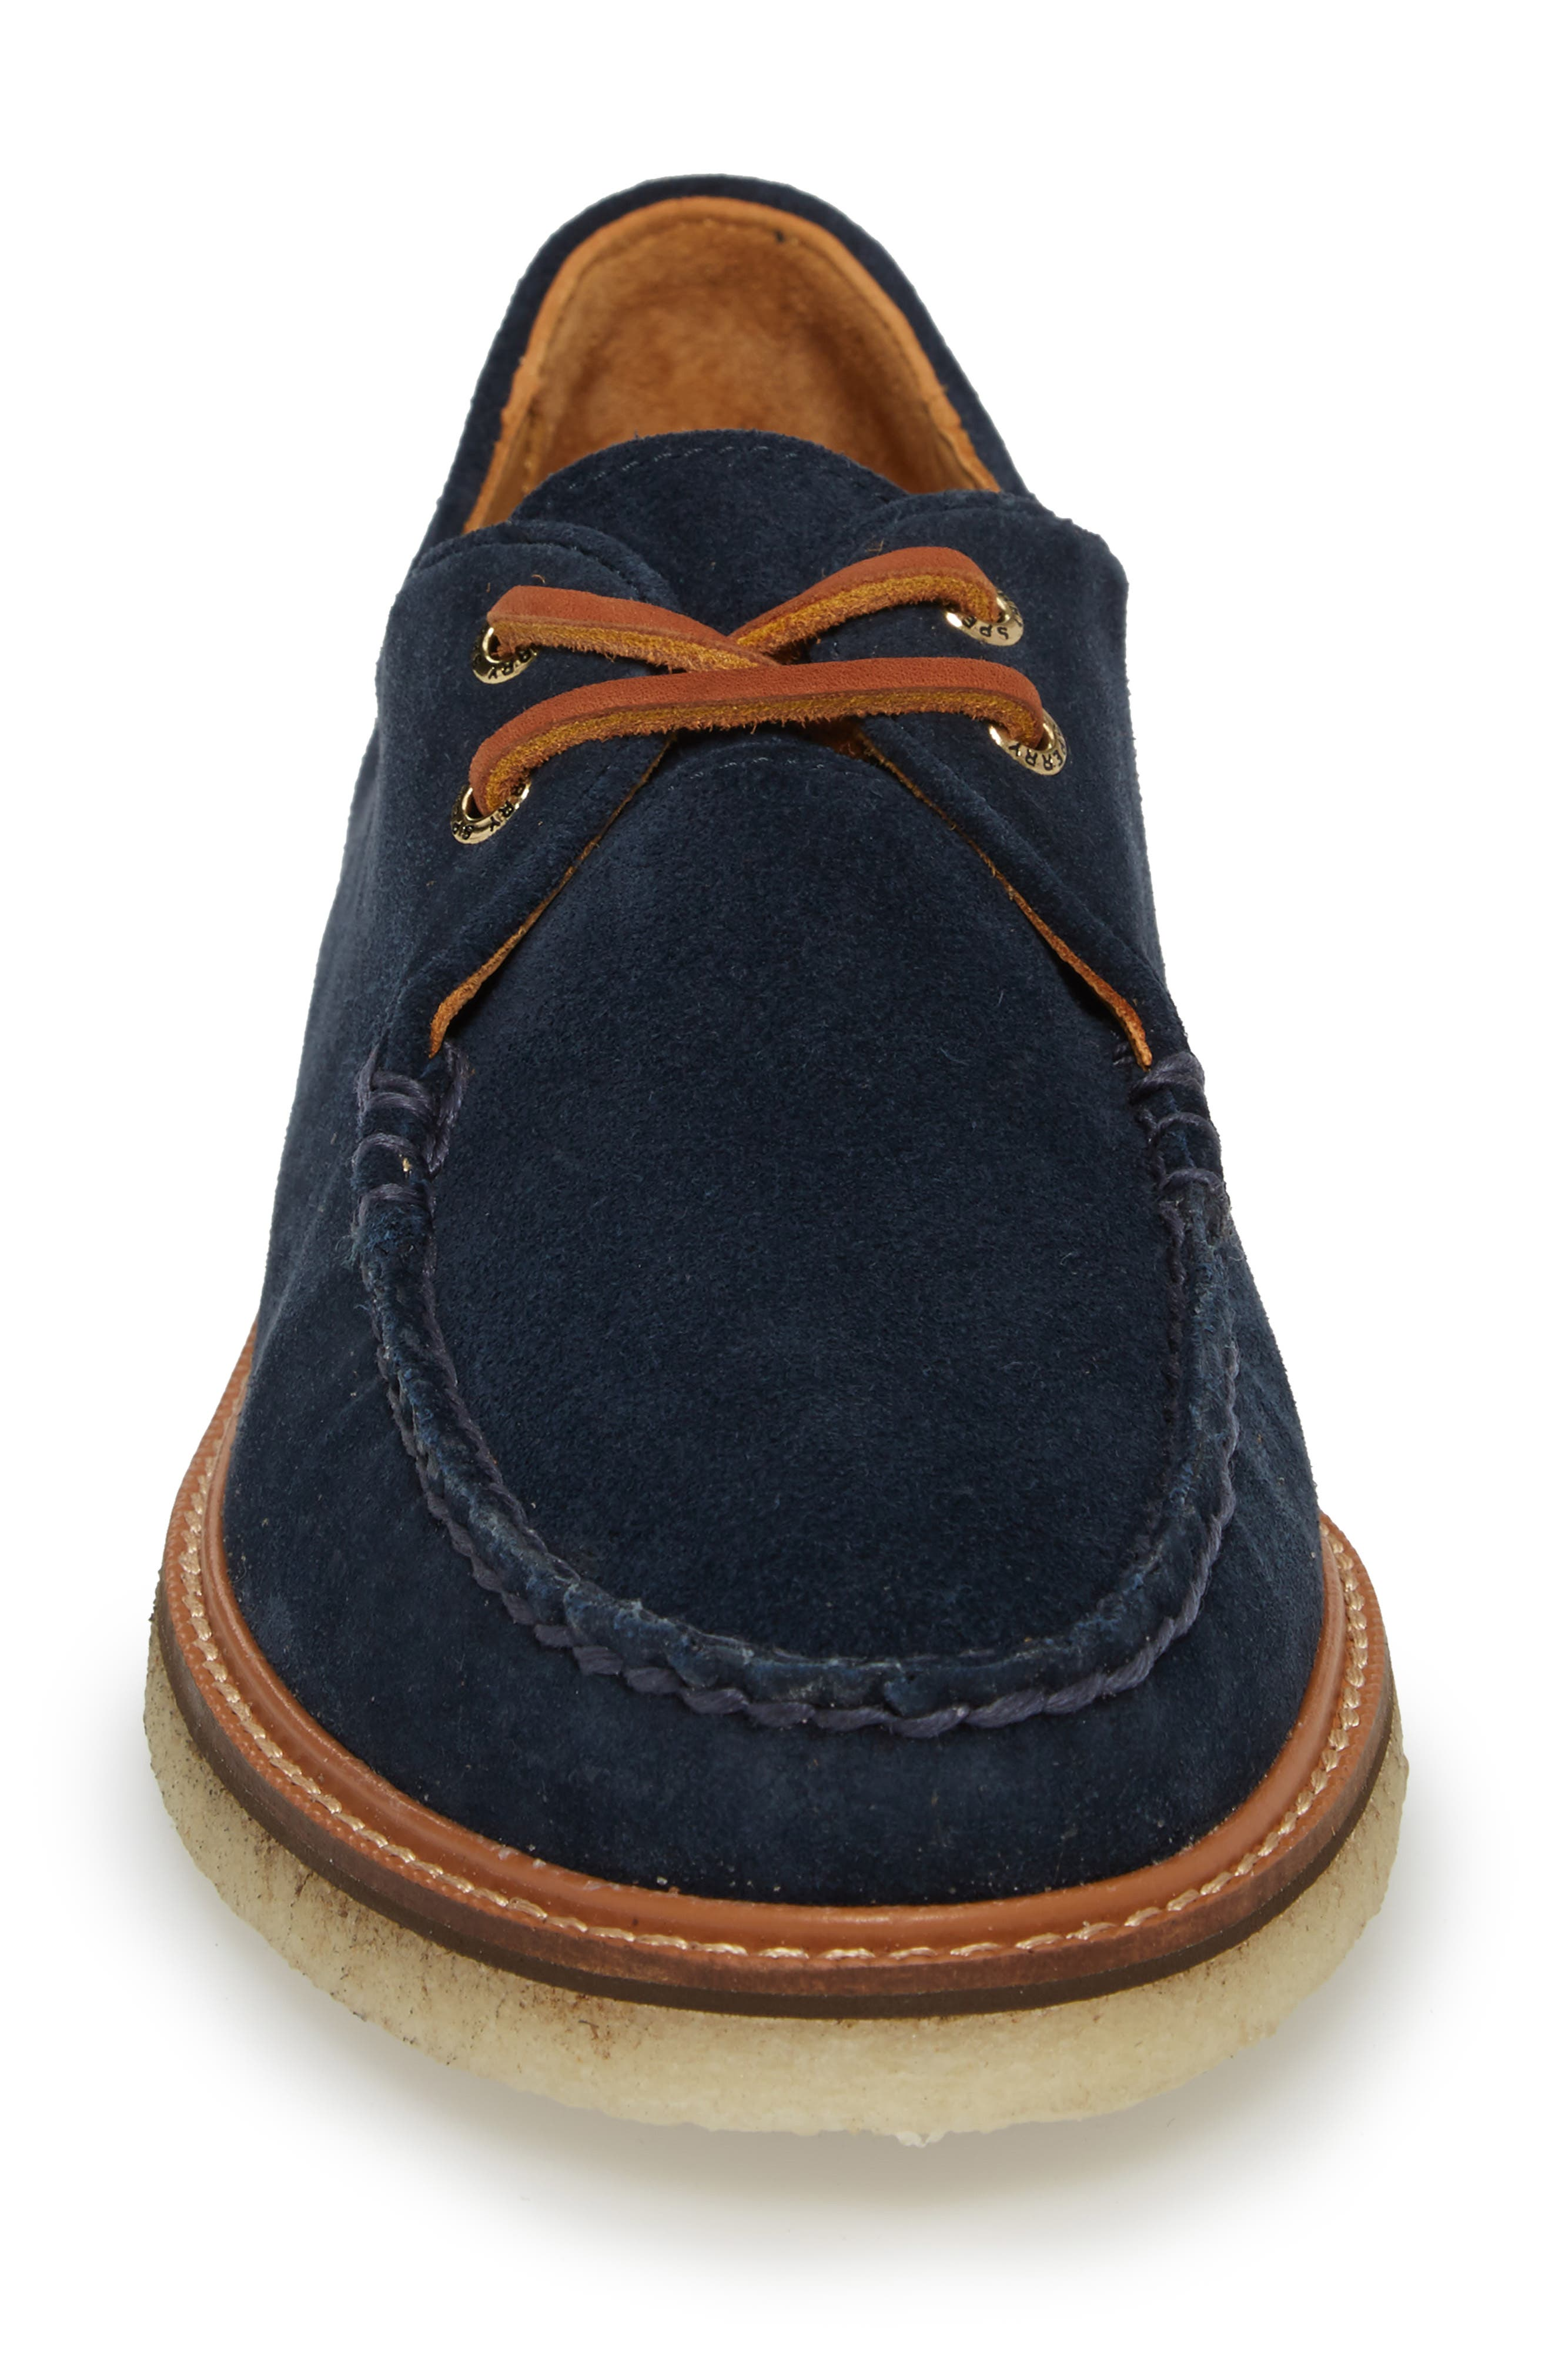 SPERRY, Gold Cup Captain's Crepe Sole Oxford, Alternate thumbnail 4, color, BLUE LEATHER/ SUEDE